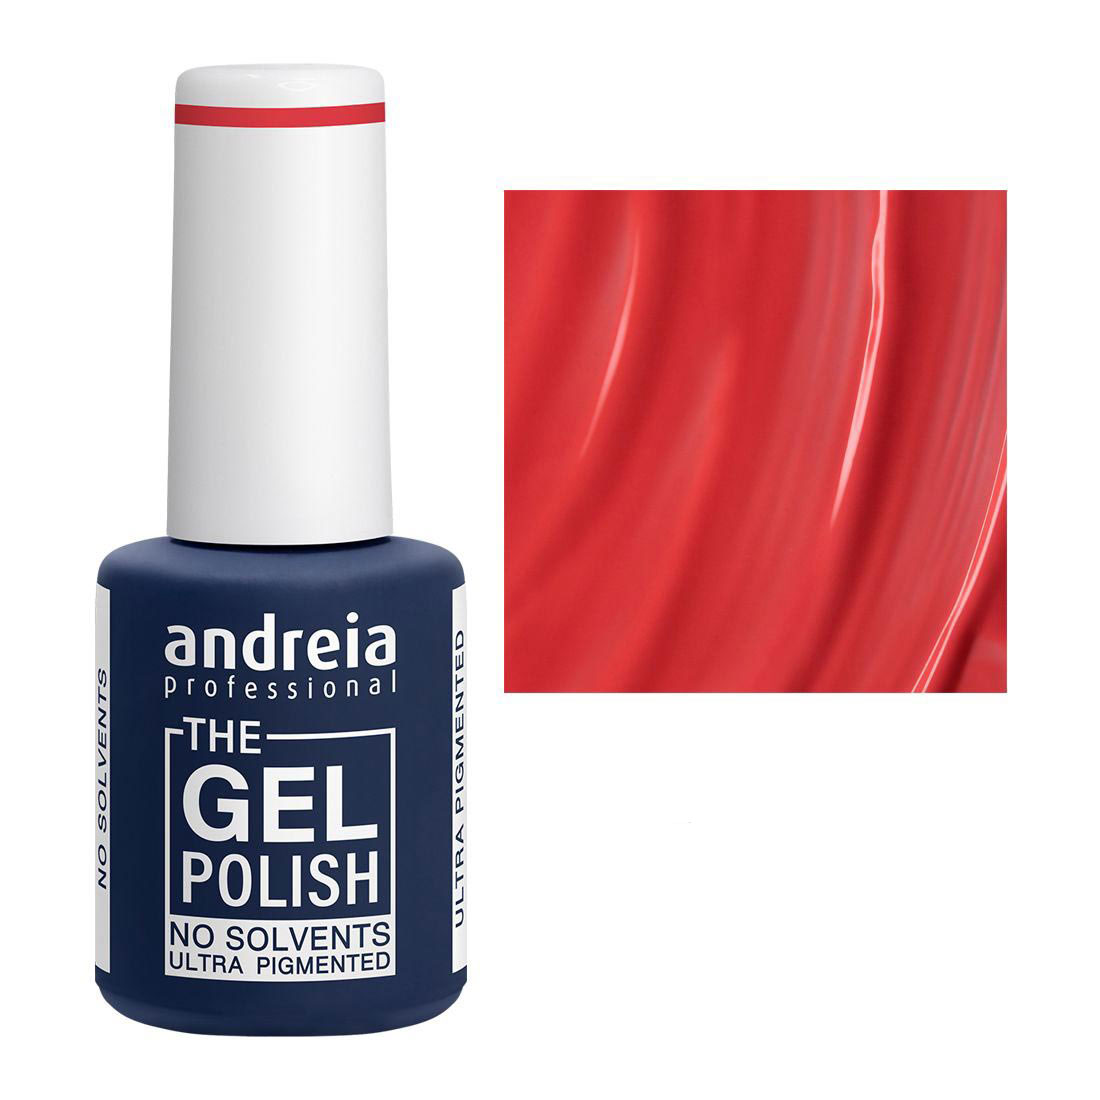 Andreia The Gel Polish G19